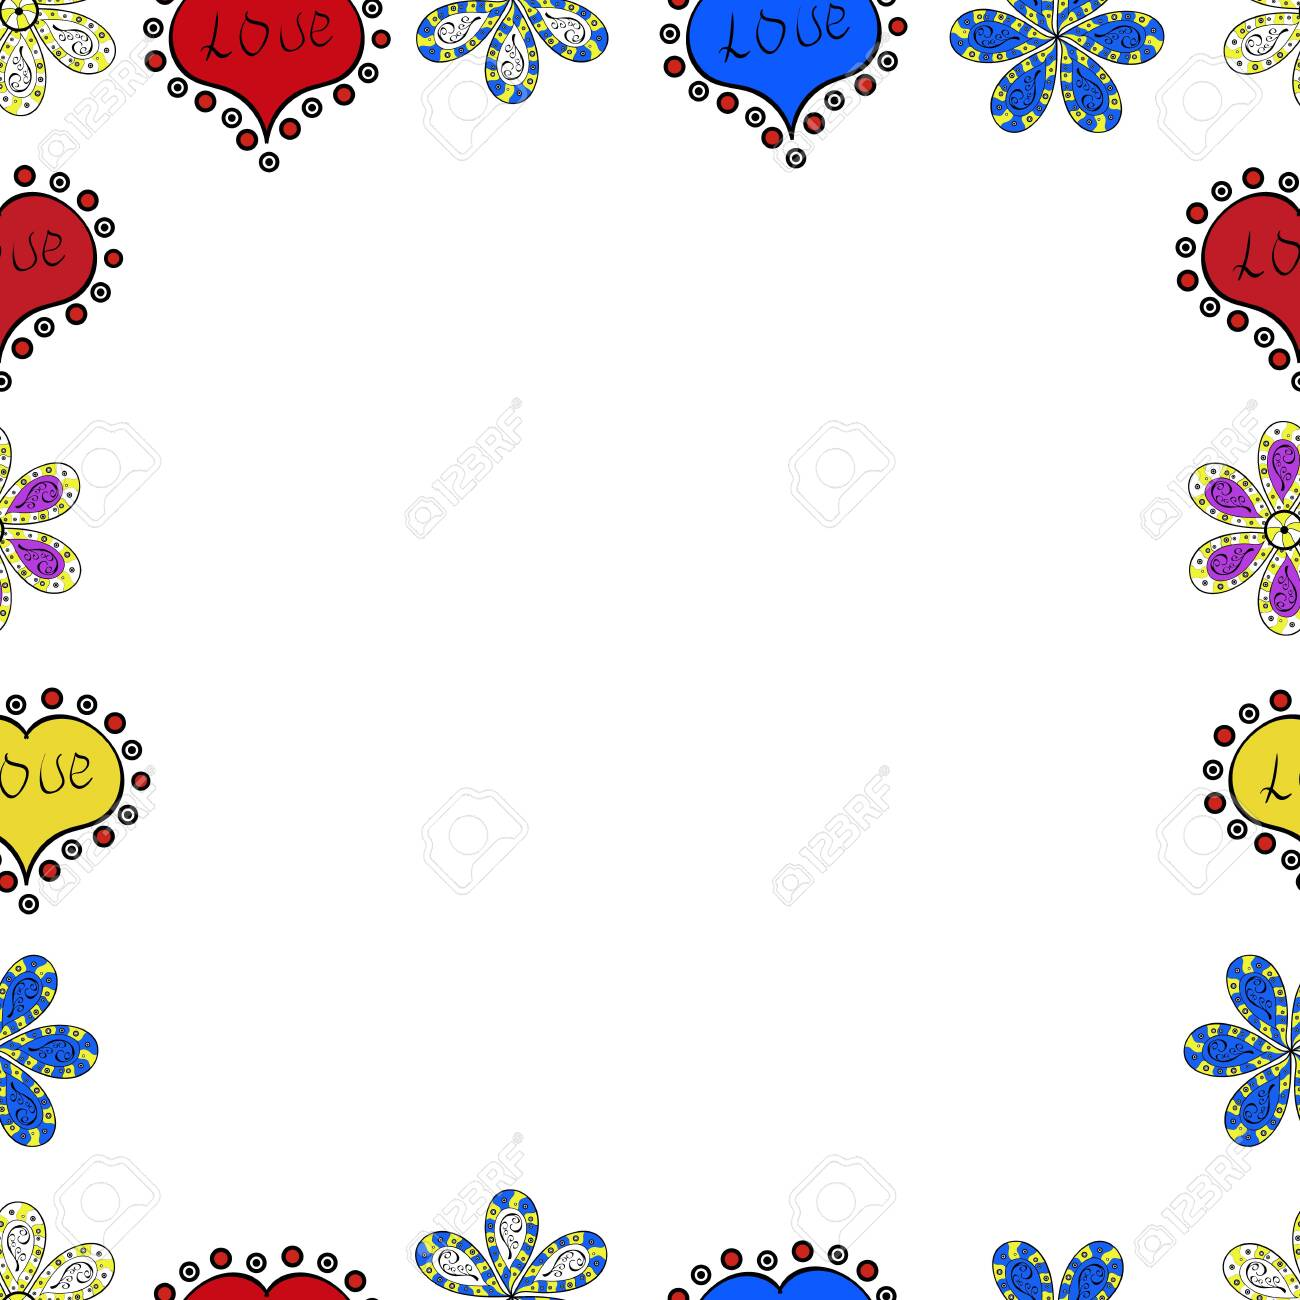 Decorative Vintage Frames And Borders Vector Border Design Royalty Free Cliparts Vectors And Stock Illustration Image 124420457